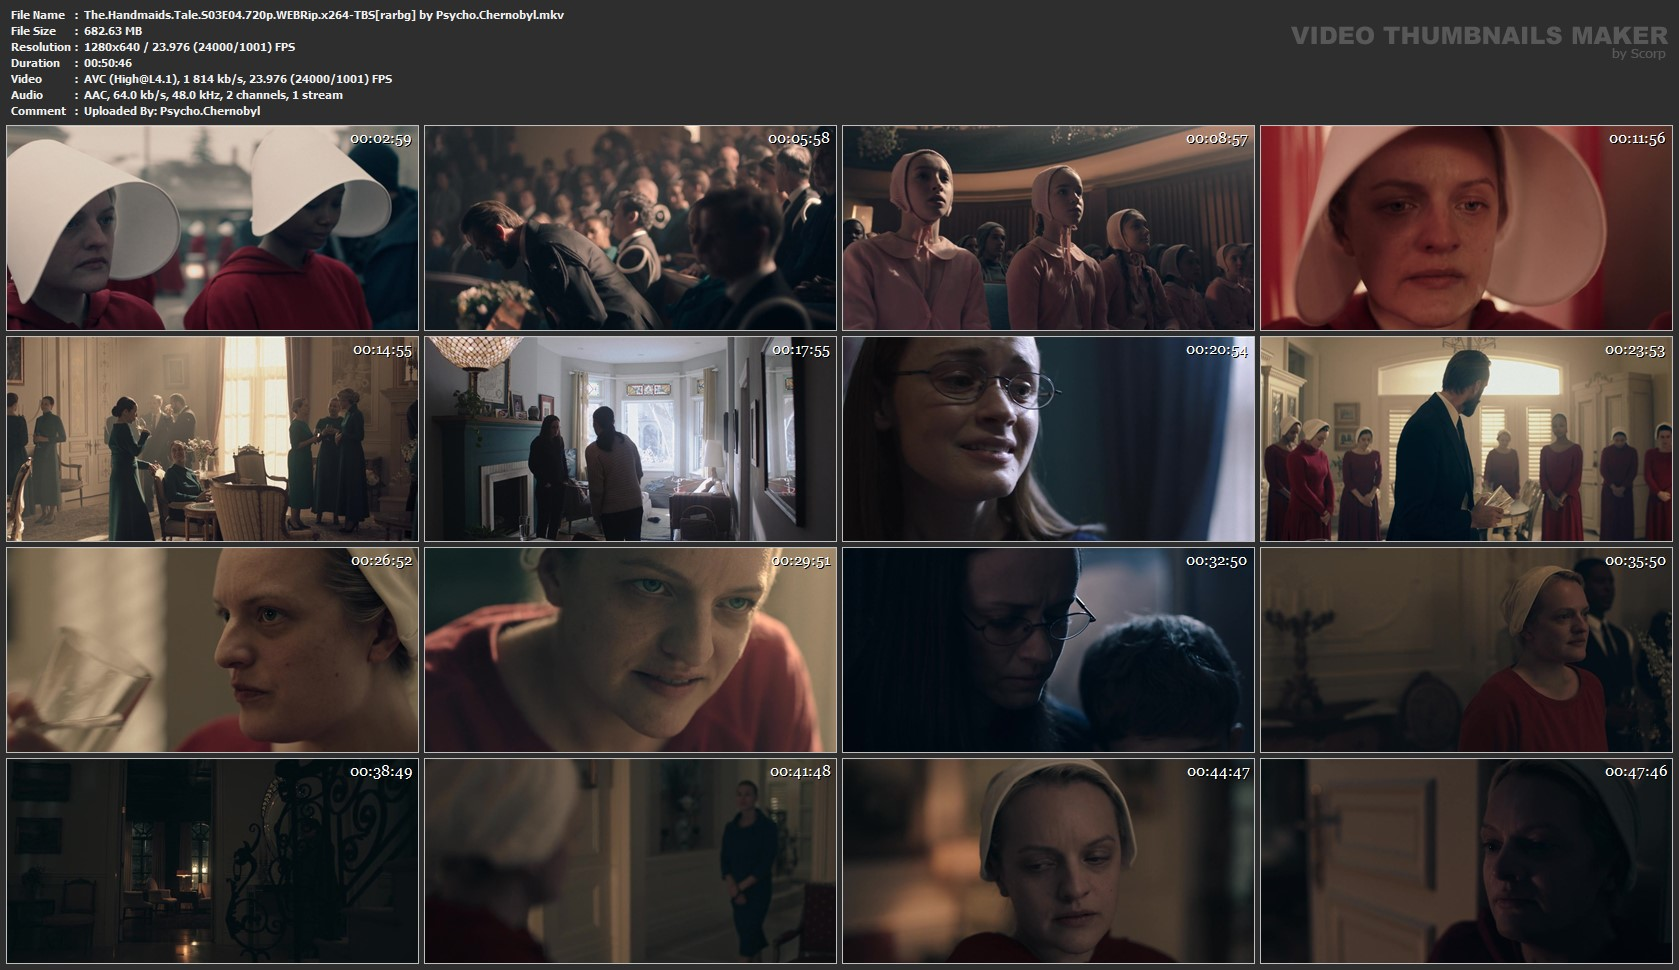 https://i.ibb.co/M7nff2h/The-Handmaids-Tale-S03-E04-720p-WEBRip-x264-TBS-rarbg-by-Psycho-Chernobyl-mkv.jpg